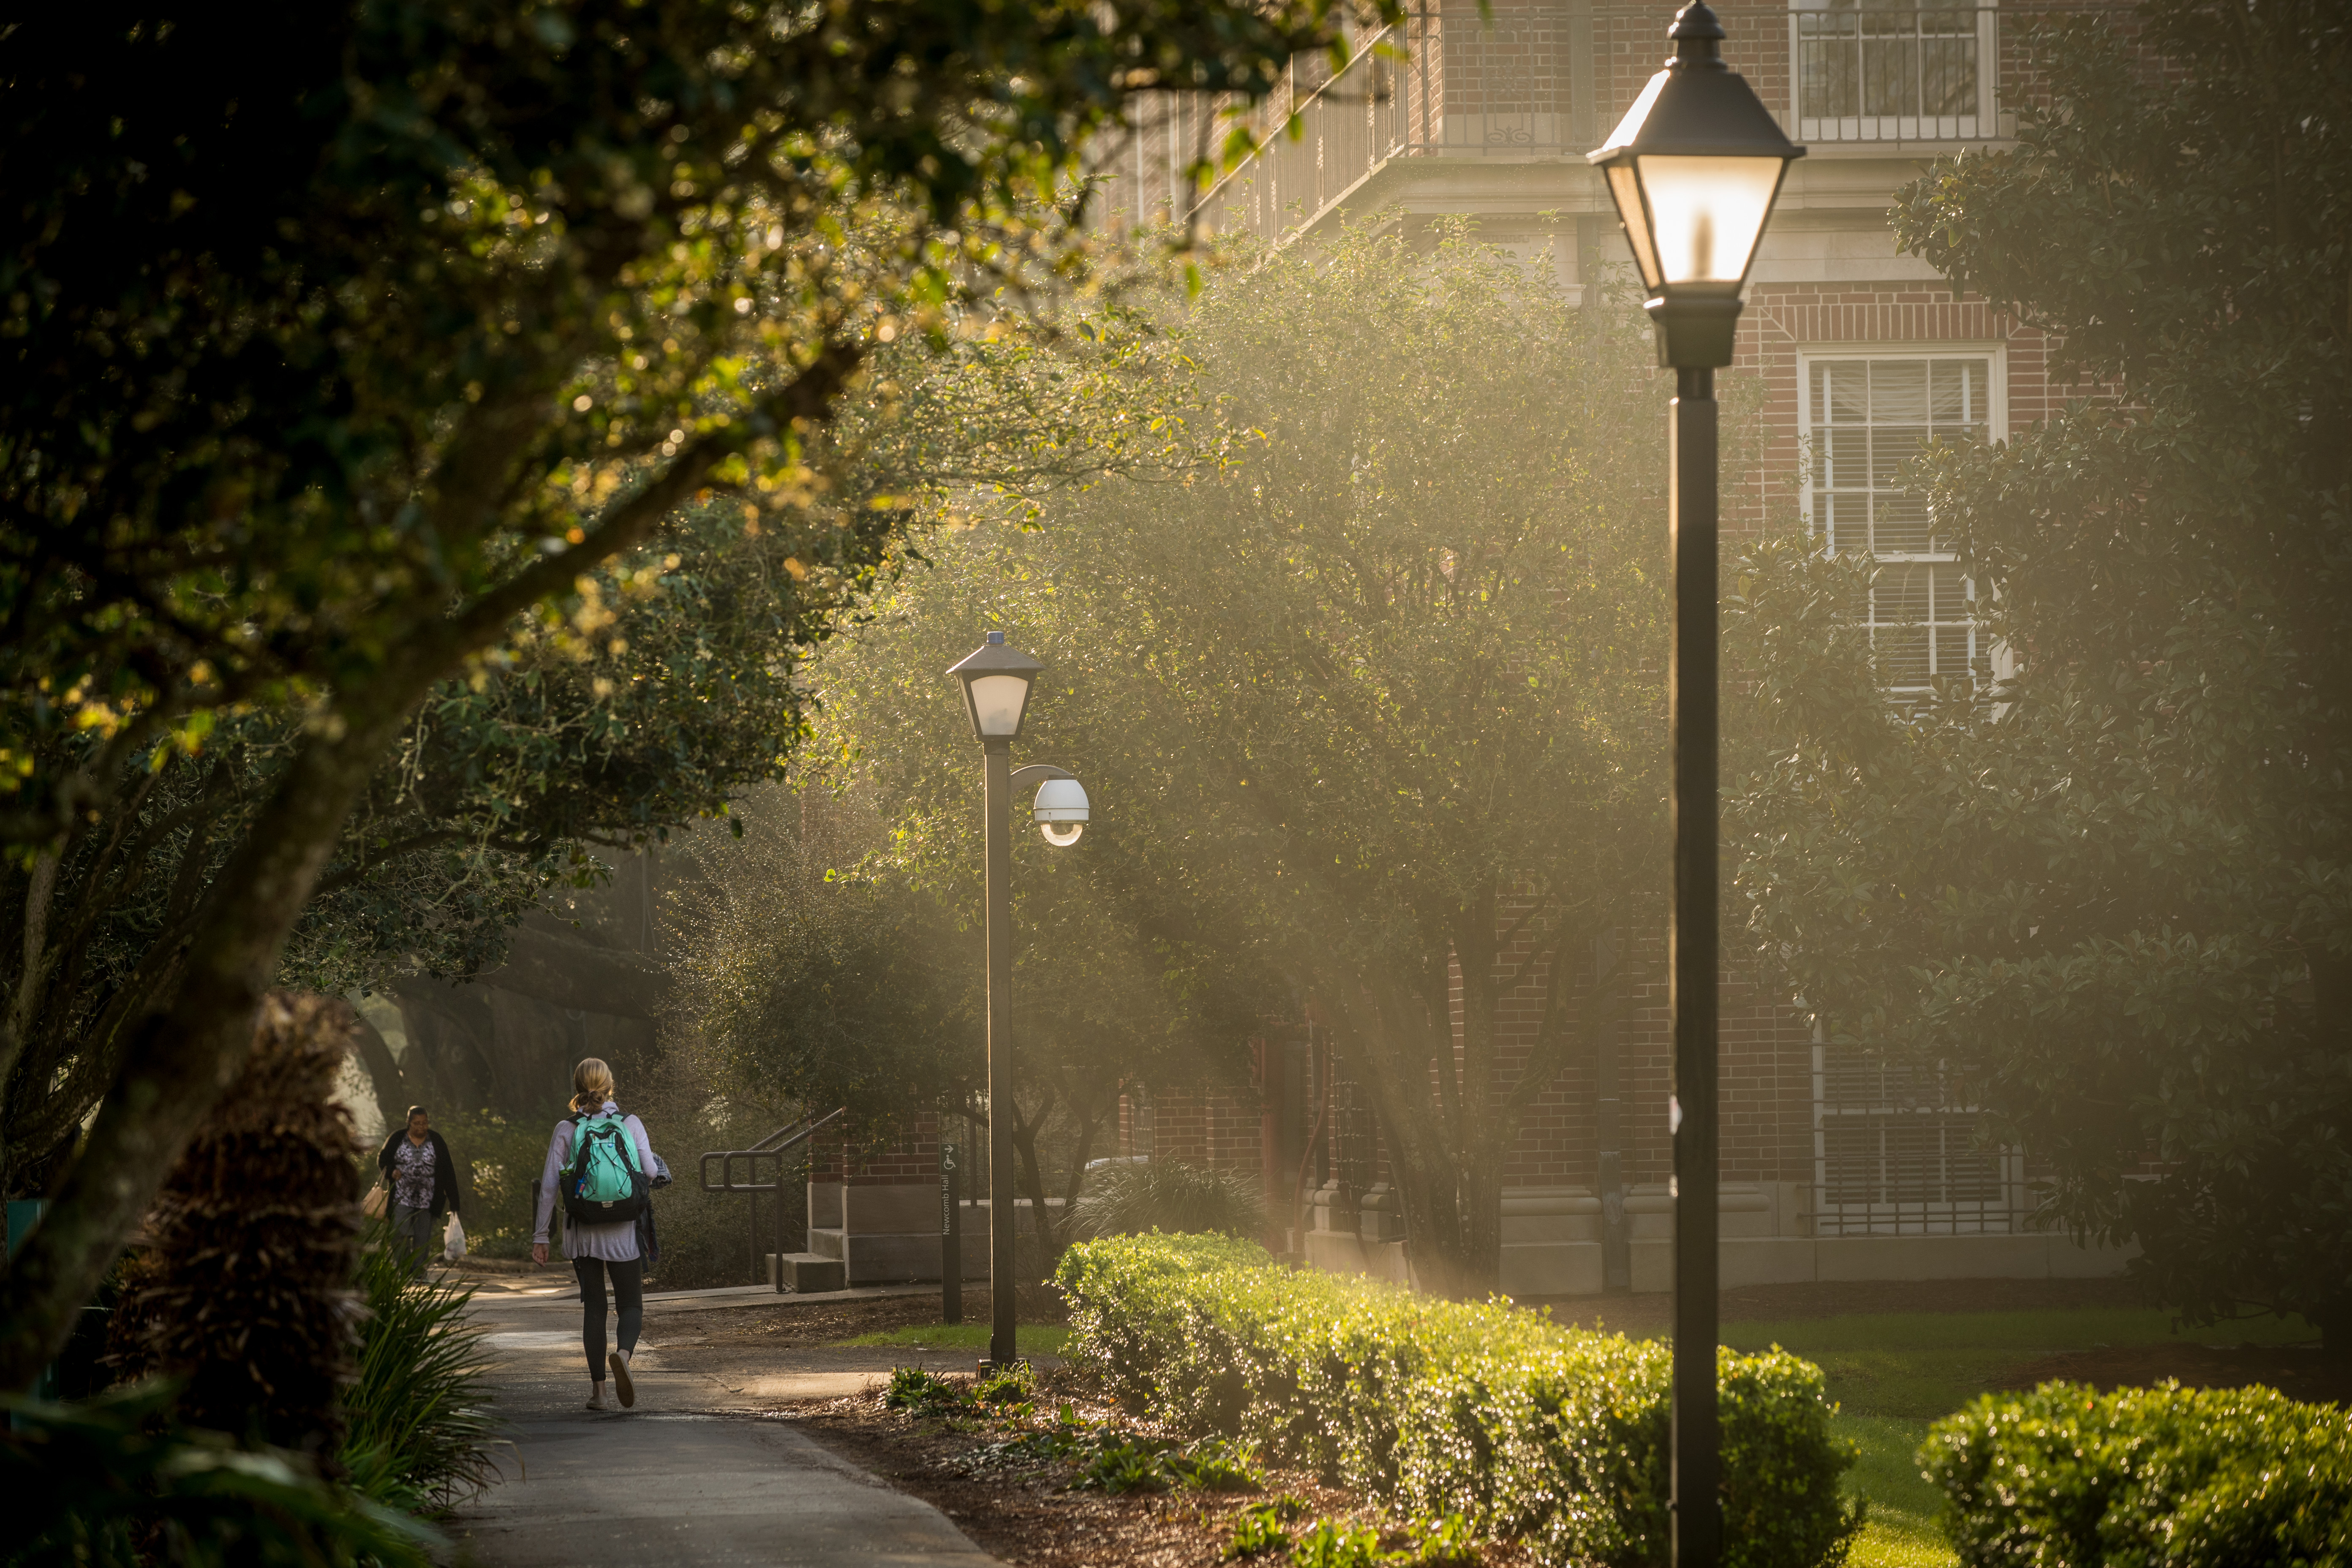 A student walks down a lighted path